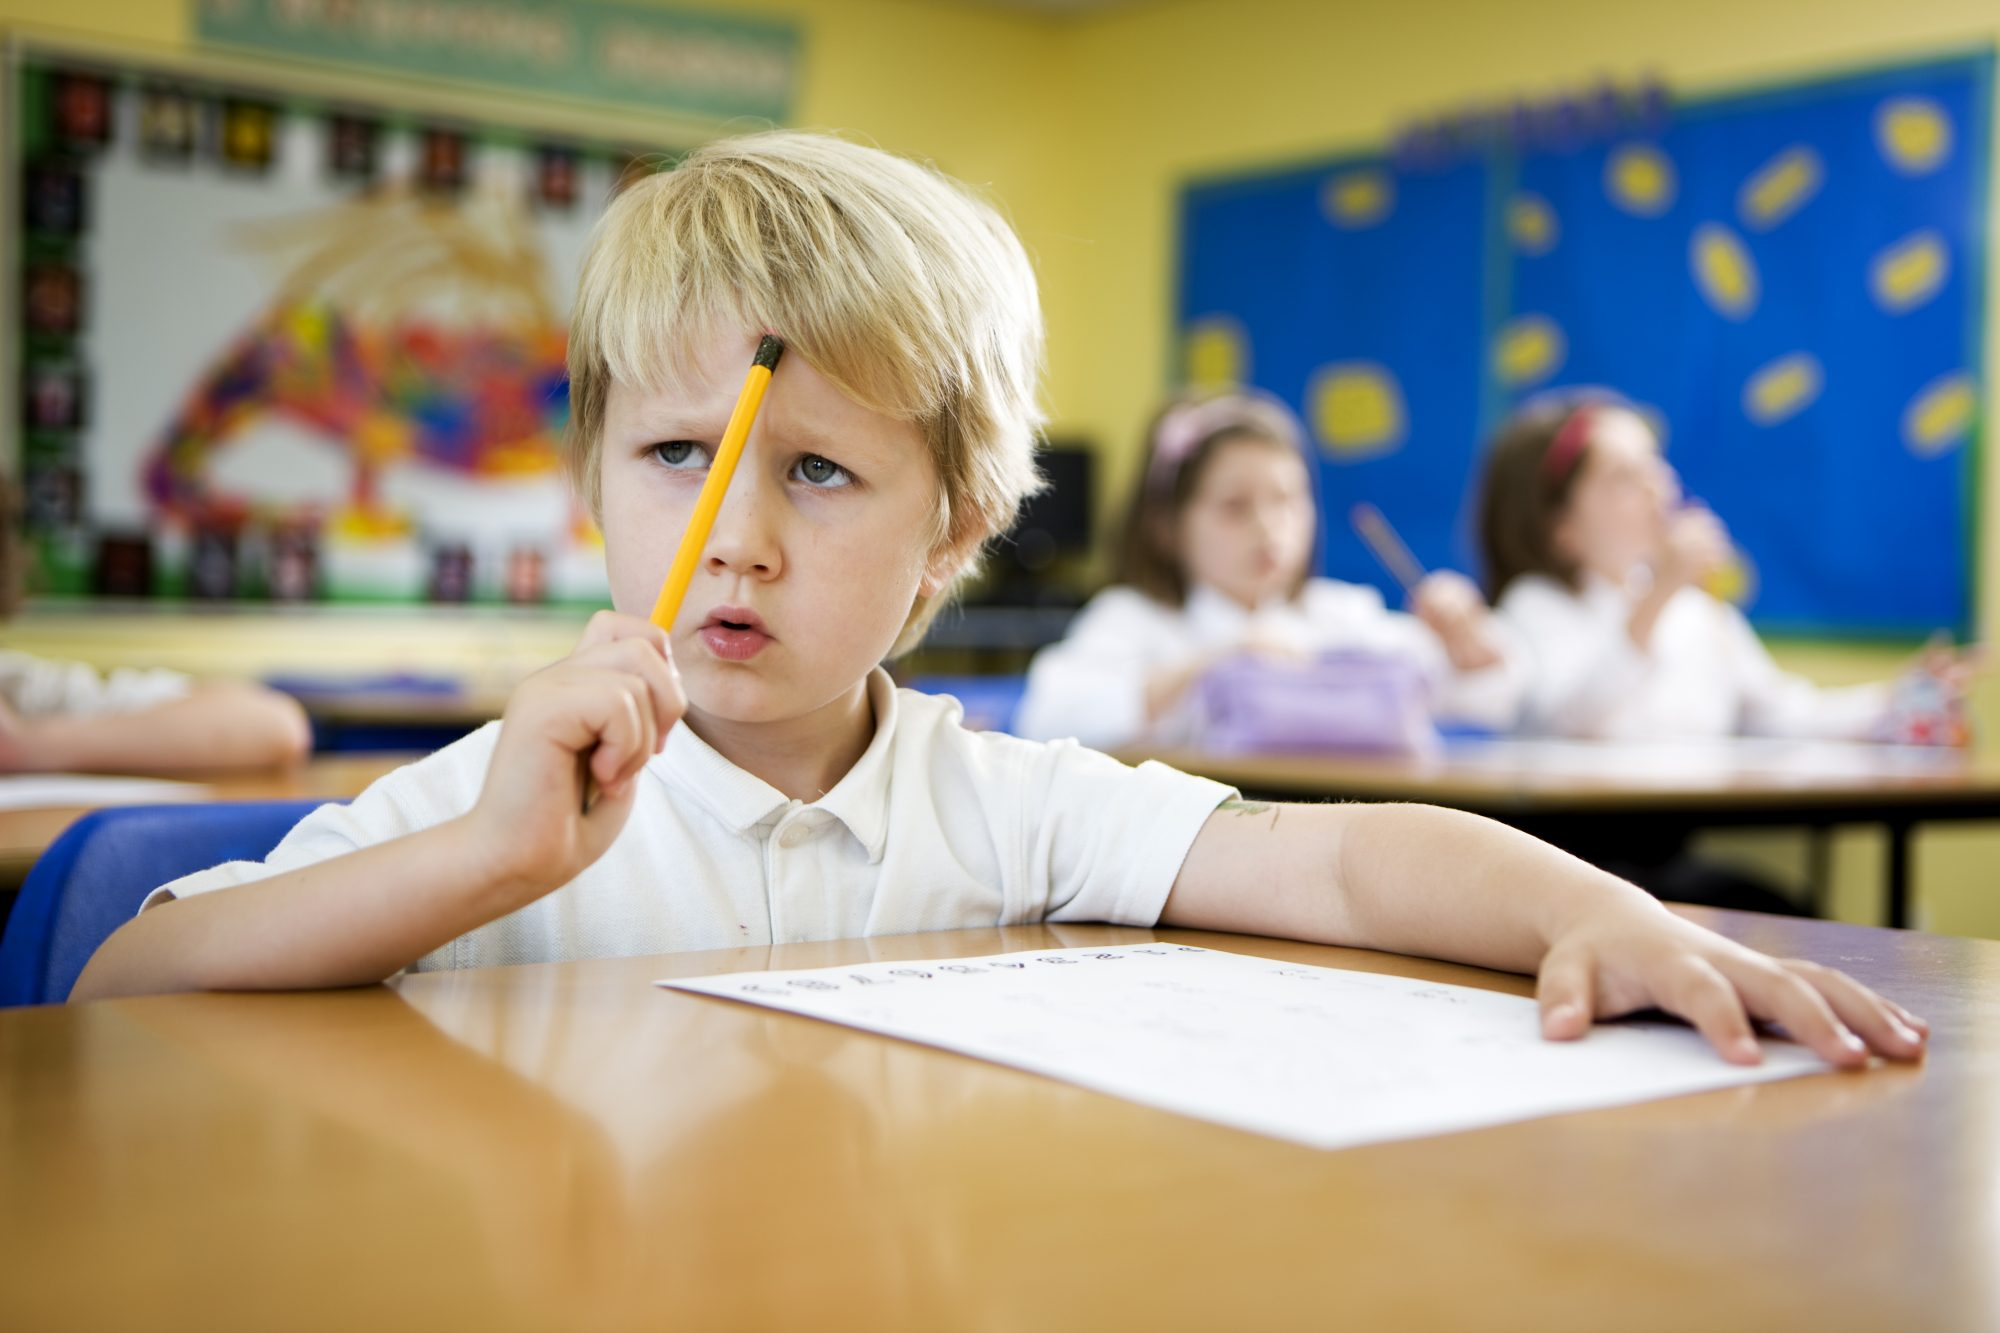 Little Boy Sitting at School Desk with Pencil